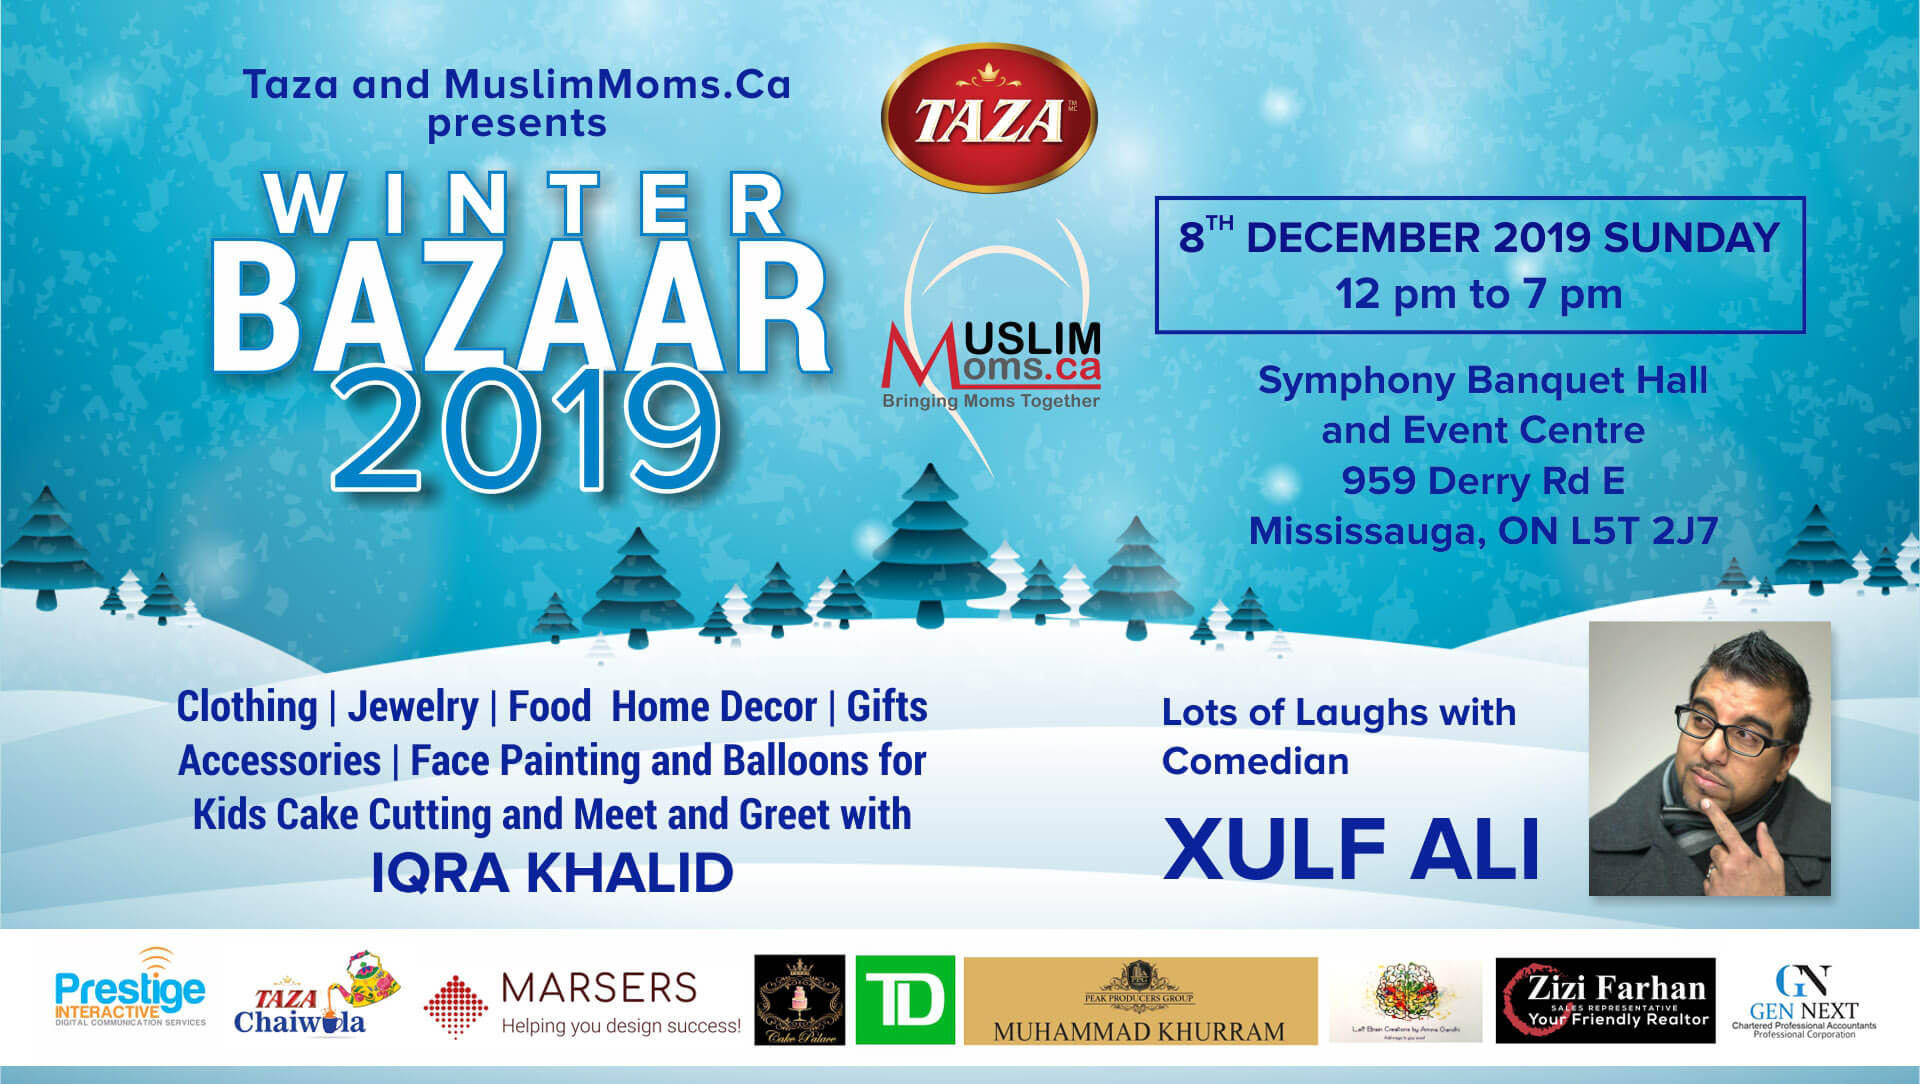 Winter Bazaar 2019 by MuslimMoms.Ca